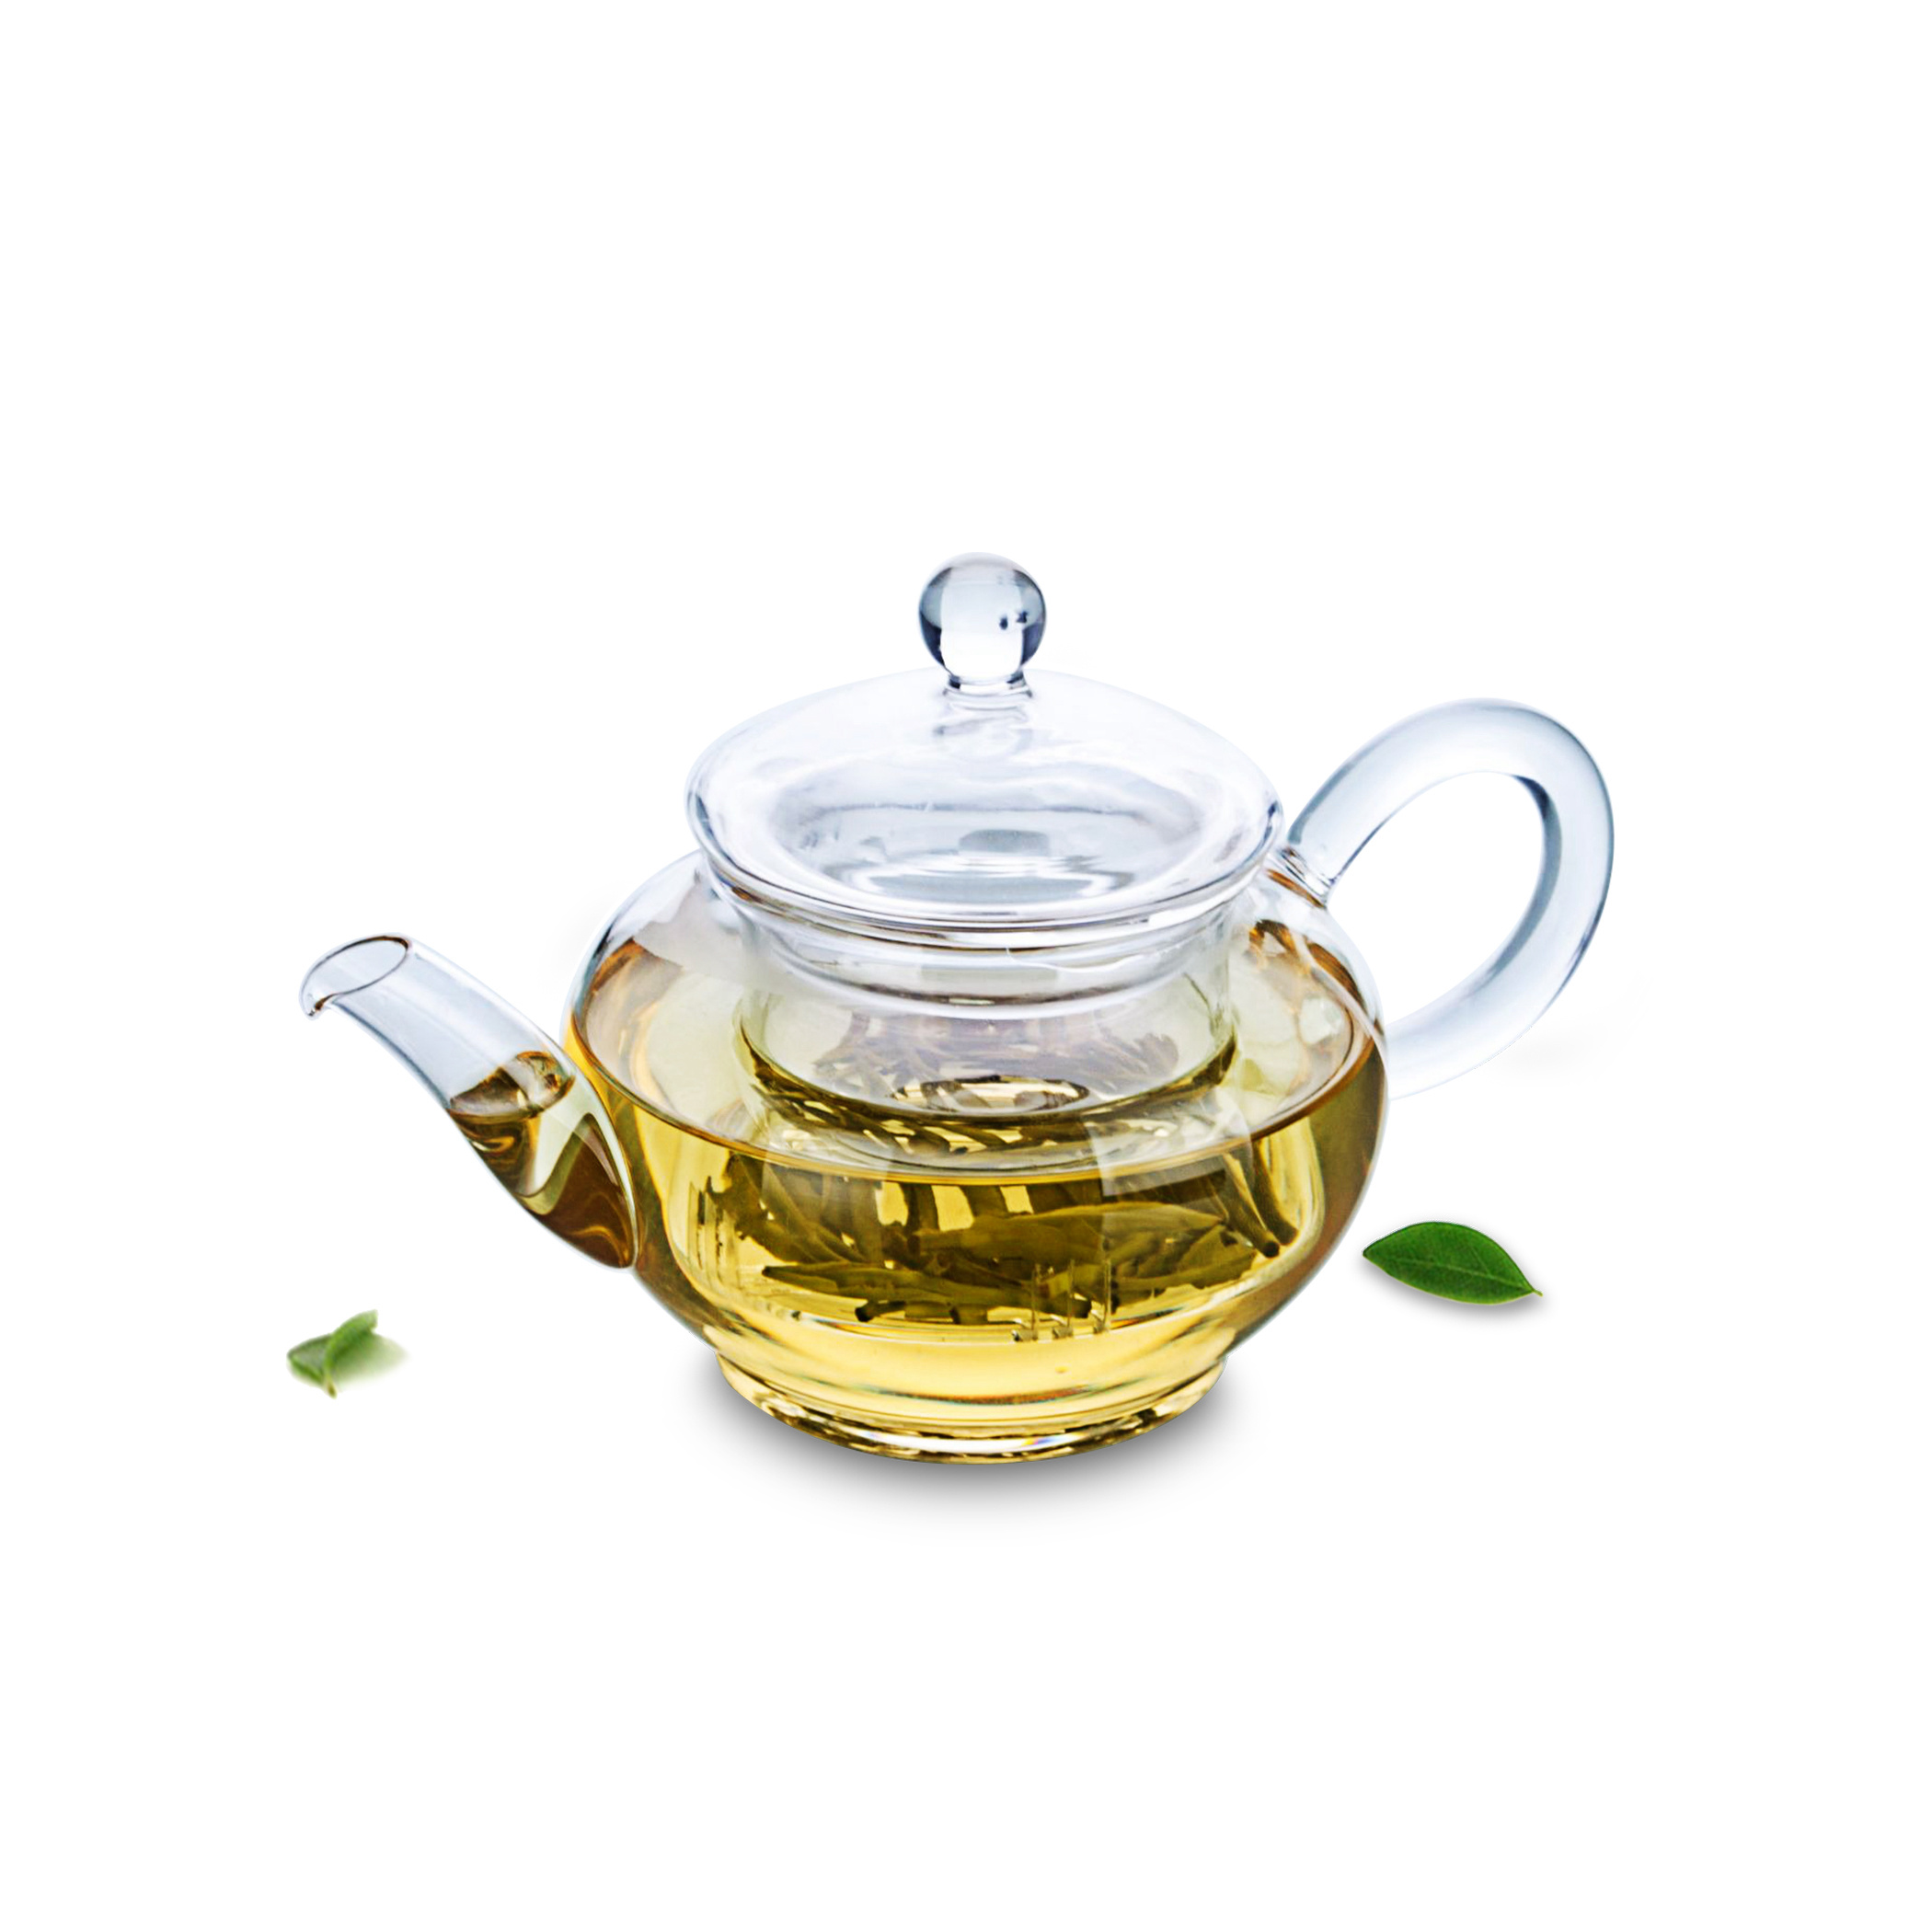 1x Small 260ml Heat-Resisting Clear Glass Handicraft Flower Teapot Water Coffee Tea Pot With Infuser